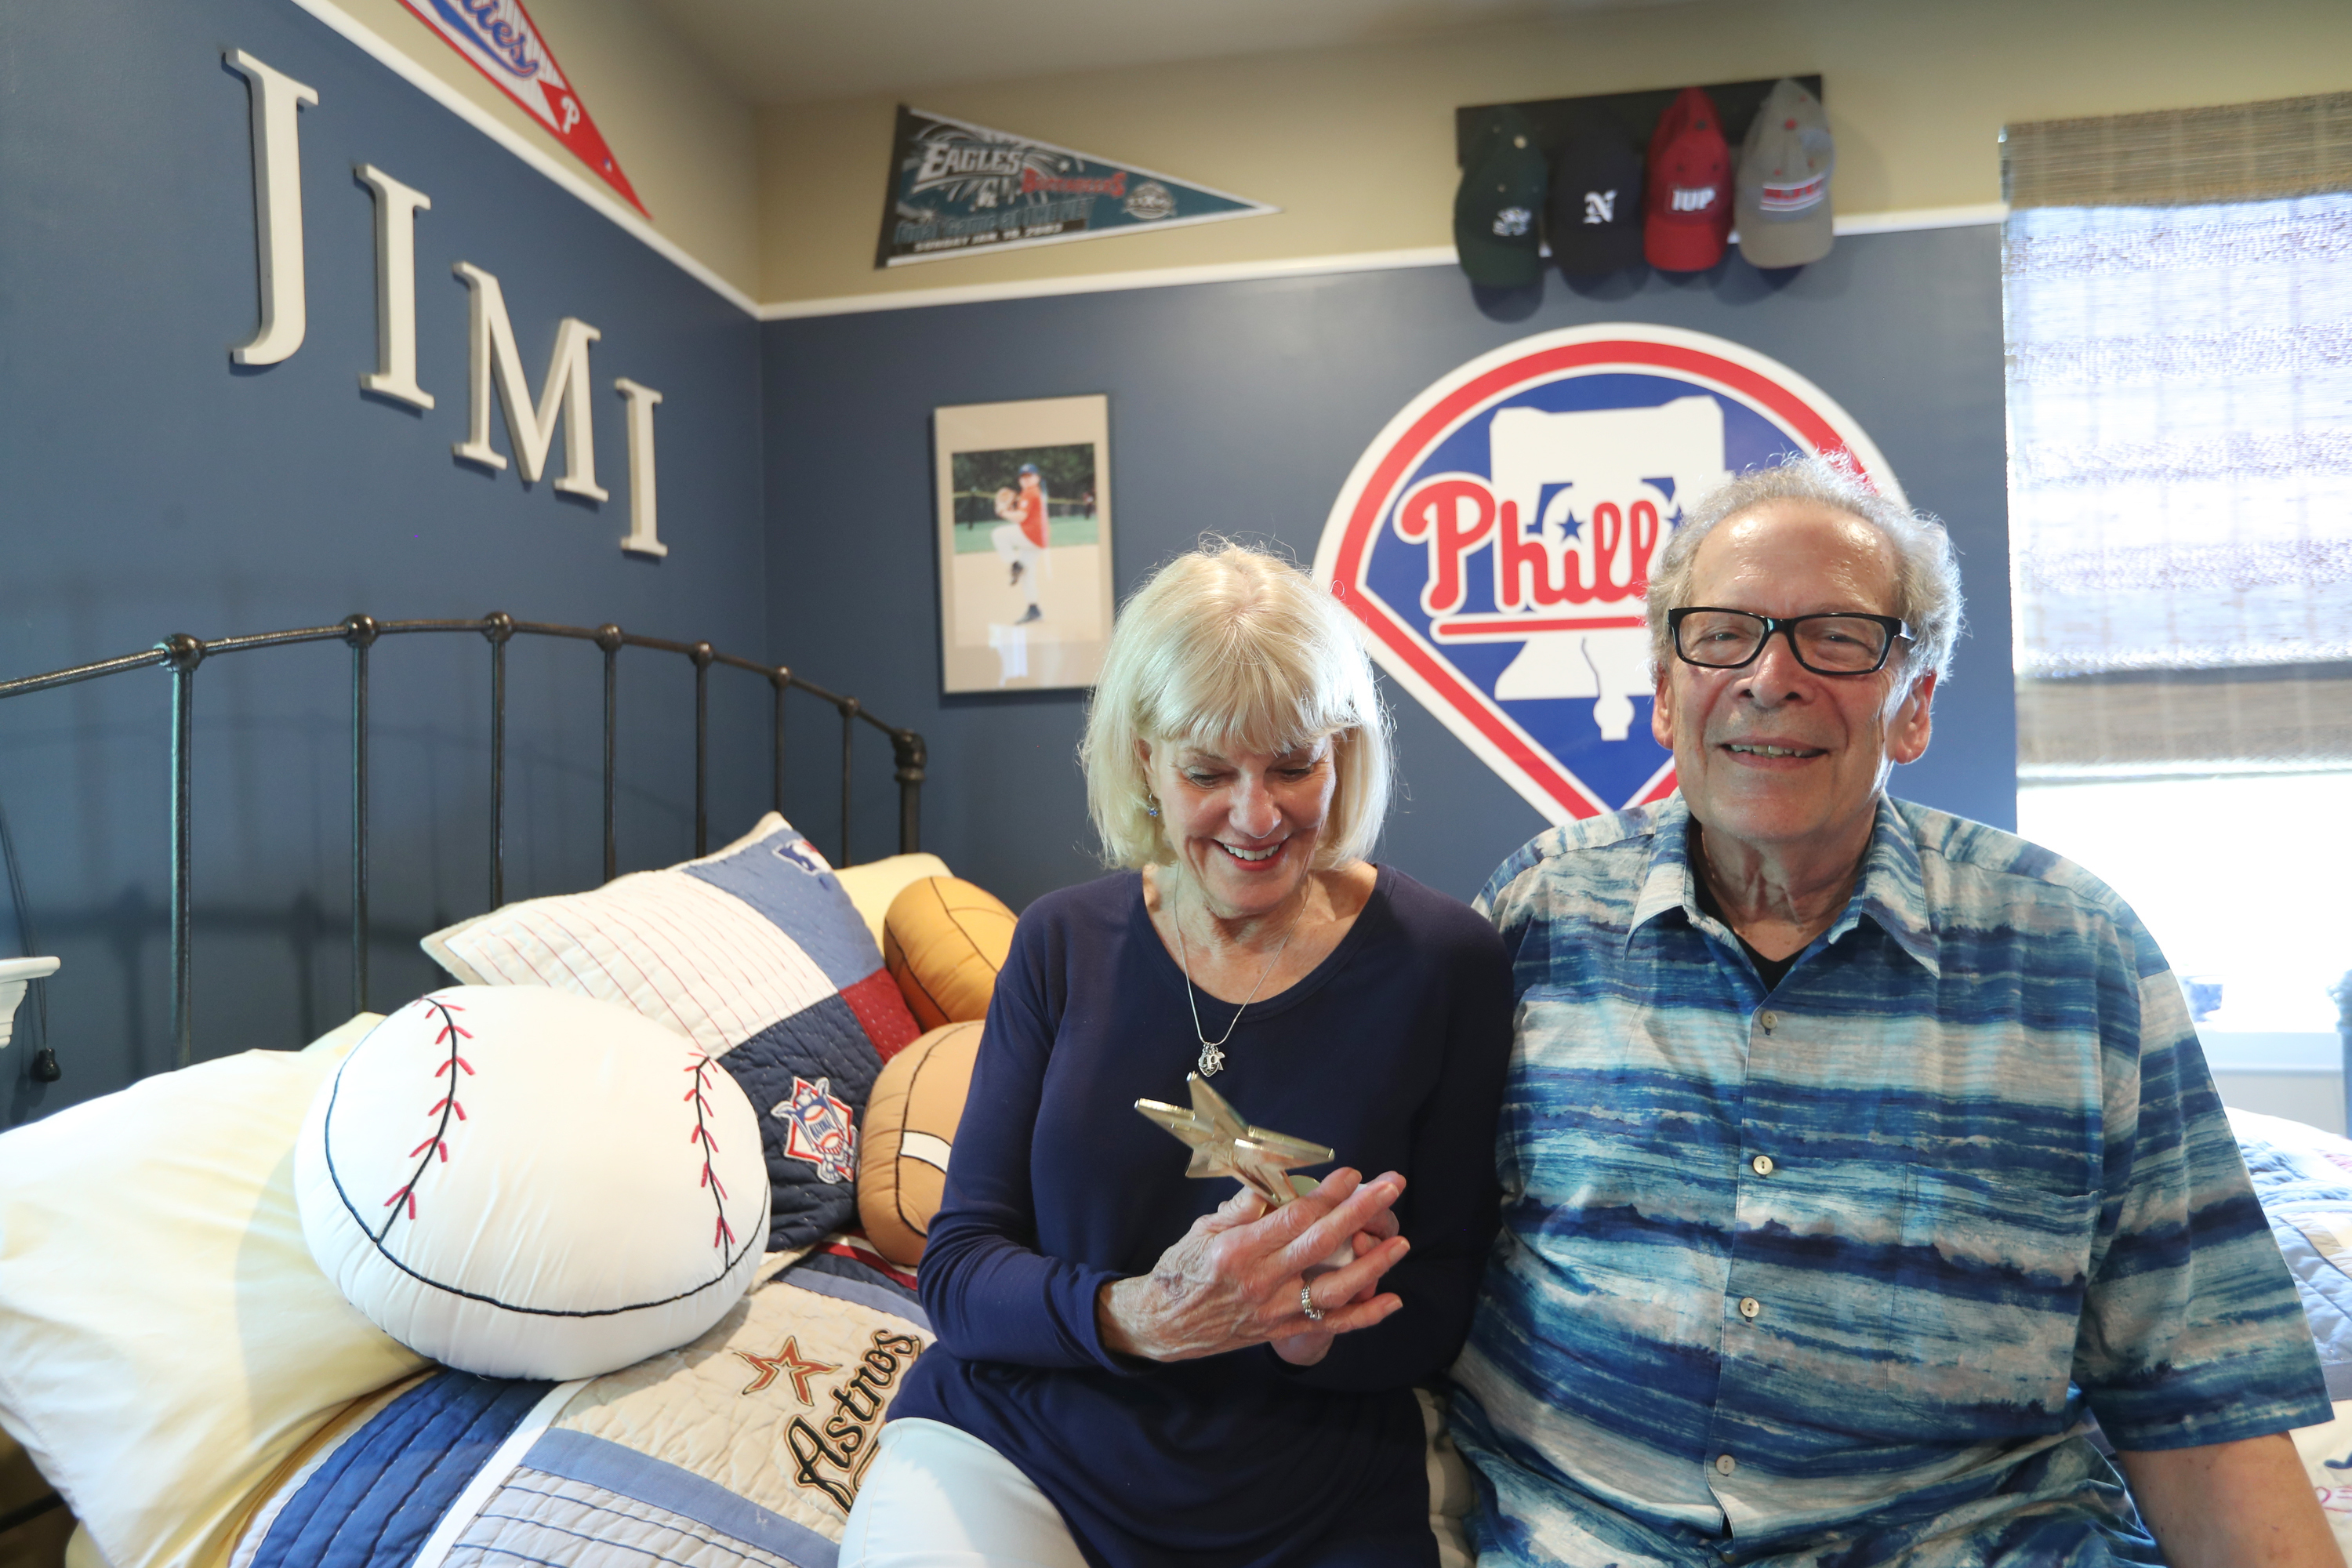 Grandparents Sharon and Rich Patrick, guardians of Jimi Patrick, recall better memories in his Newtown bedroom nearing the anniversary of the murders of four young men in Bucks County July of 2017.